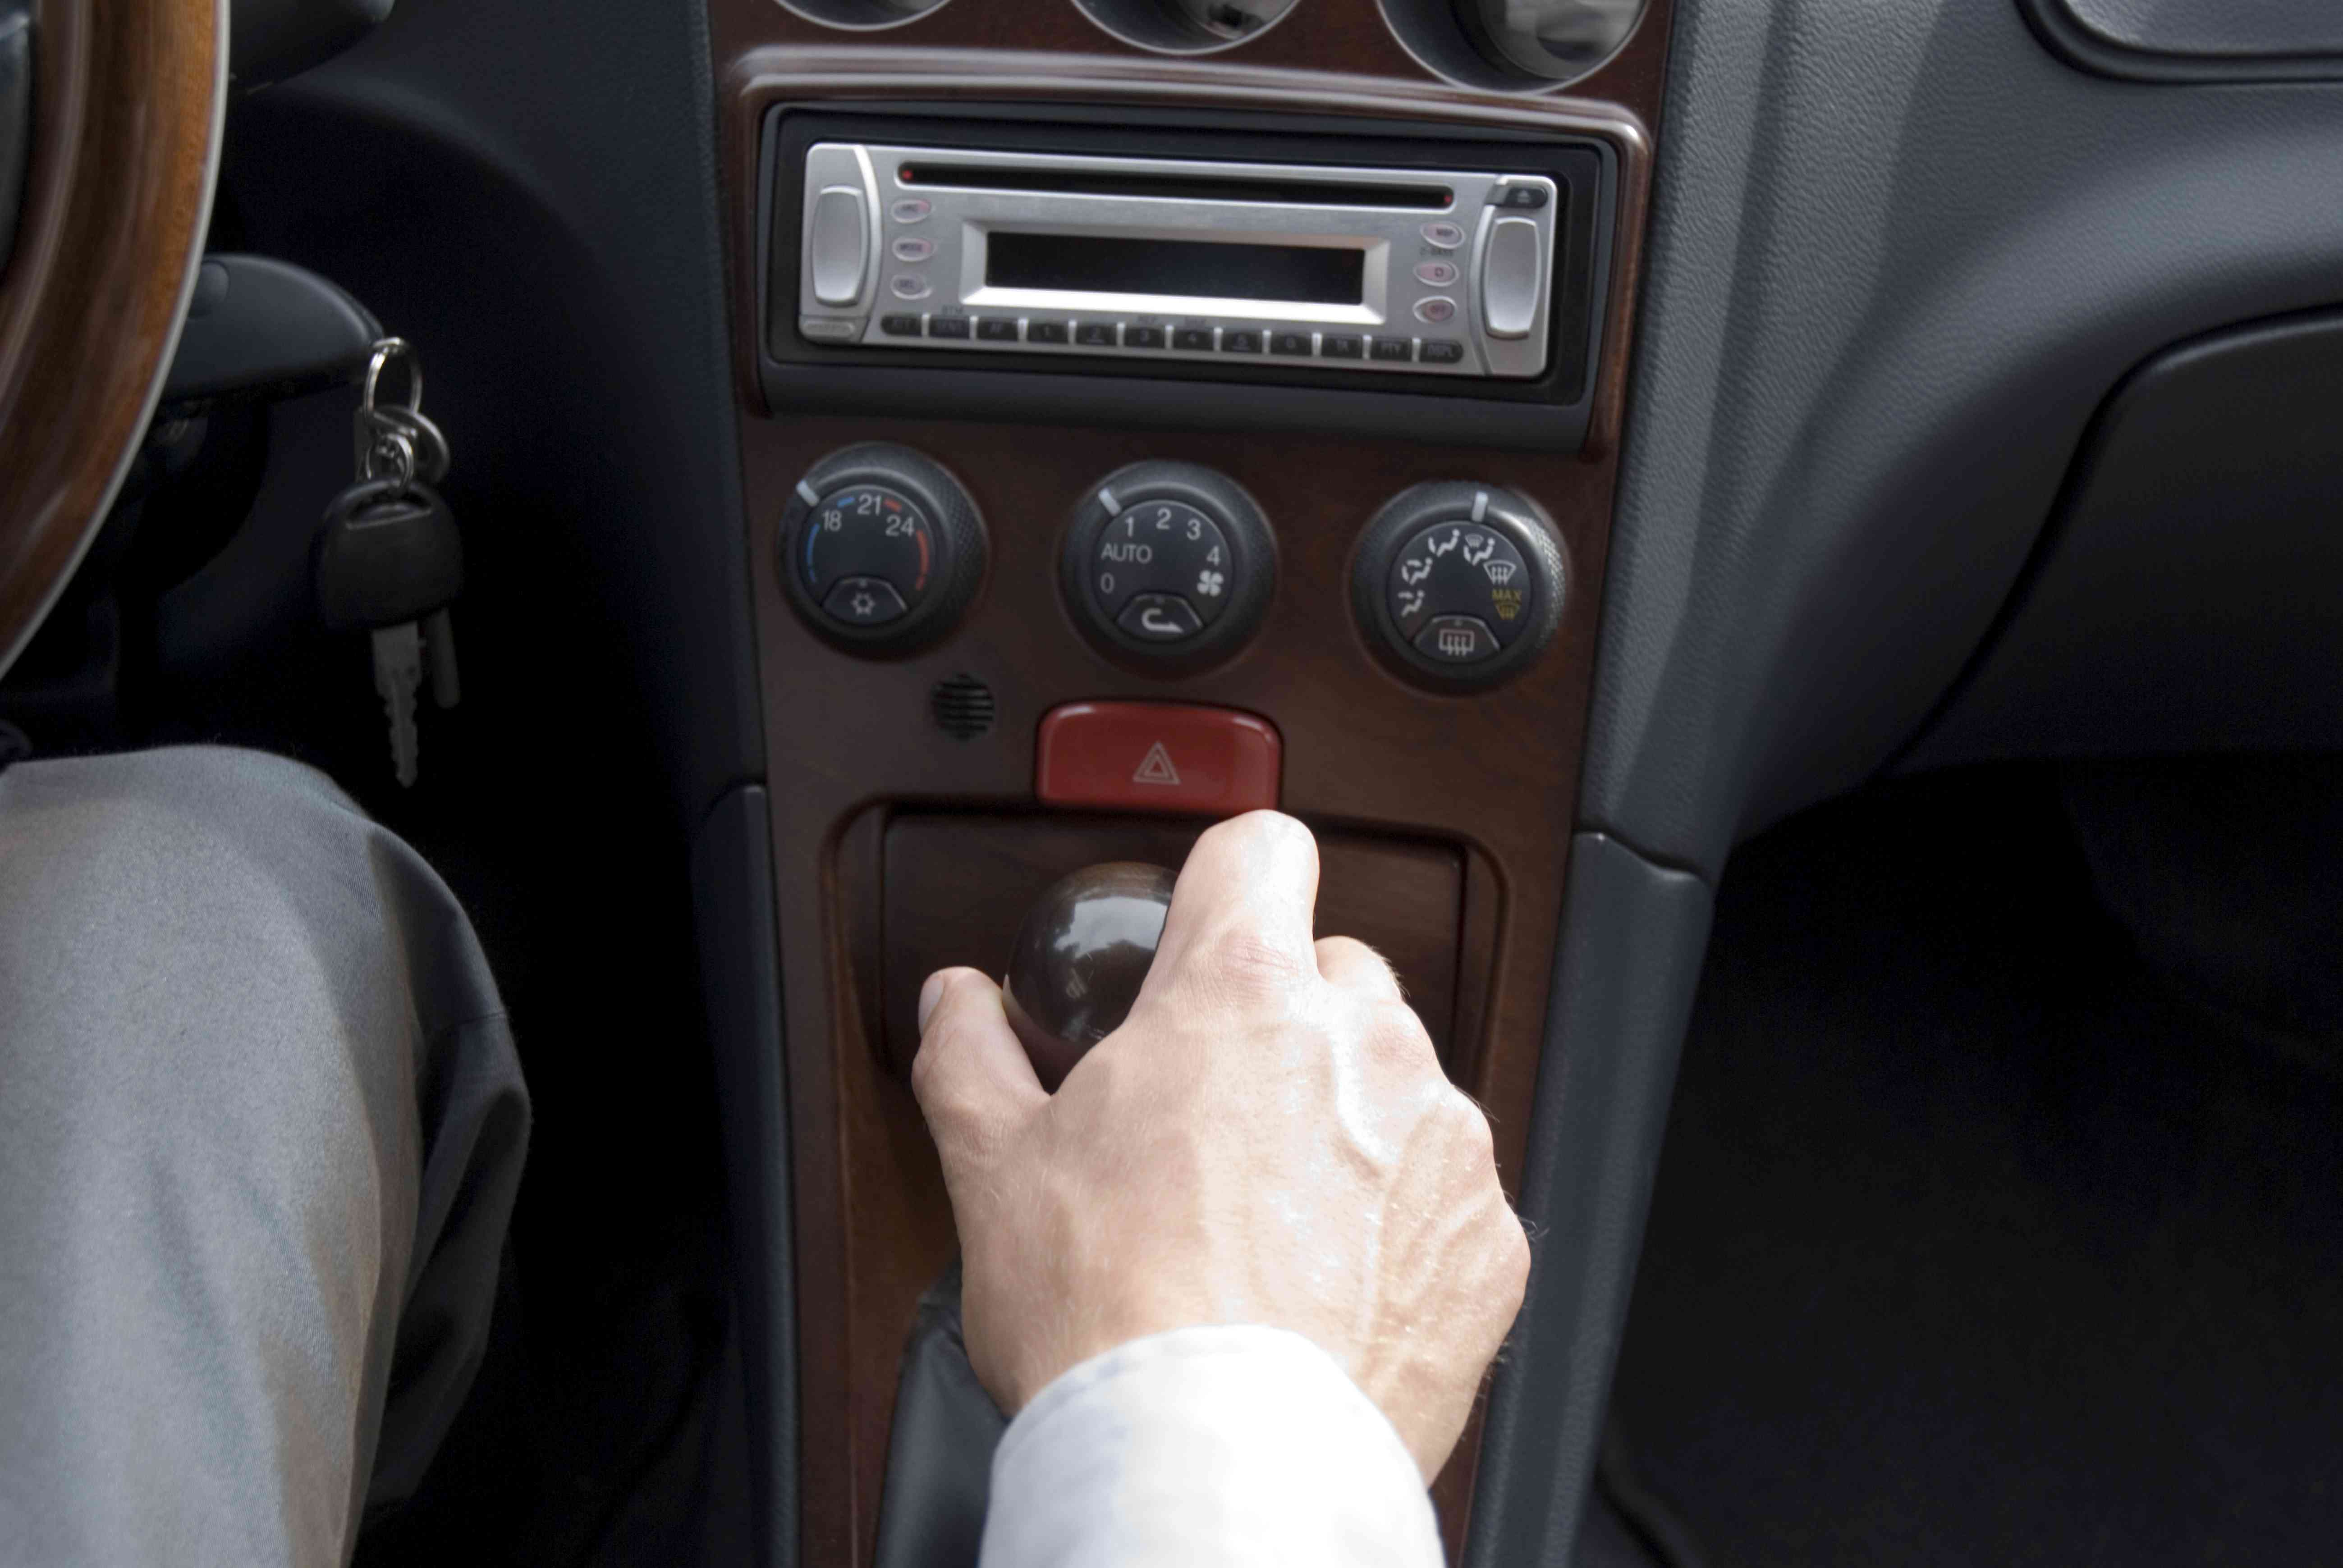 A replacement head unit in a car.